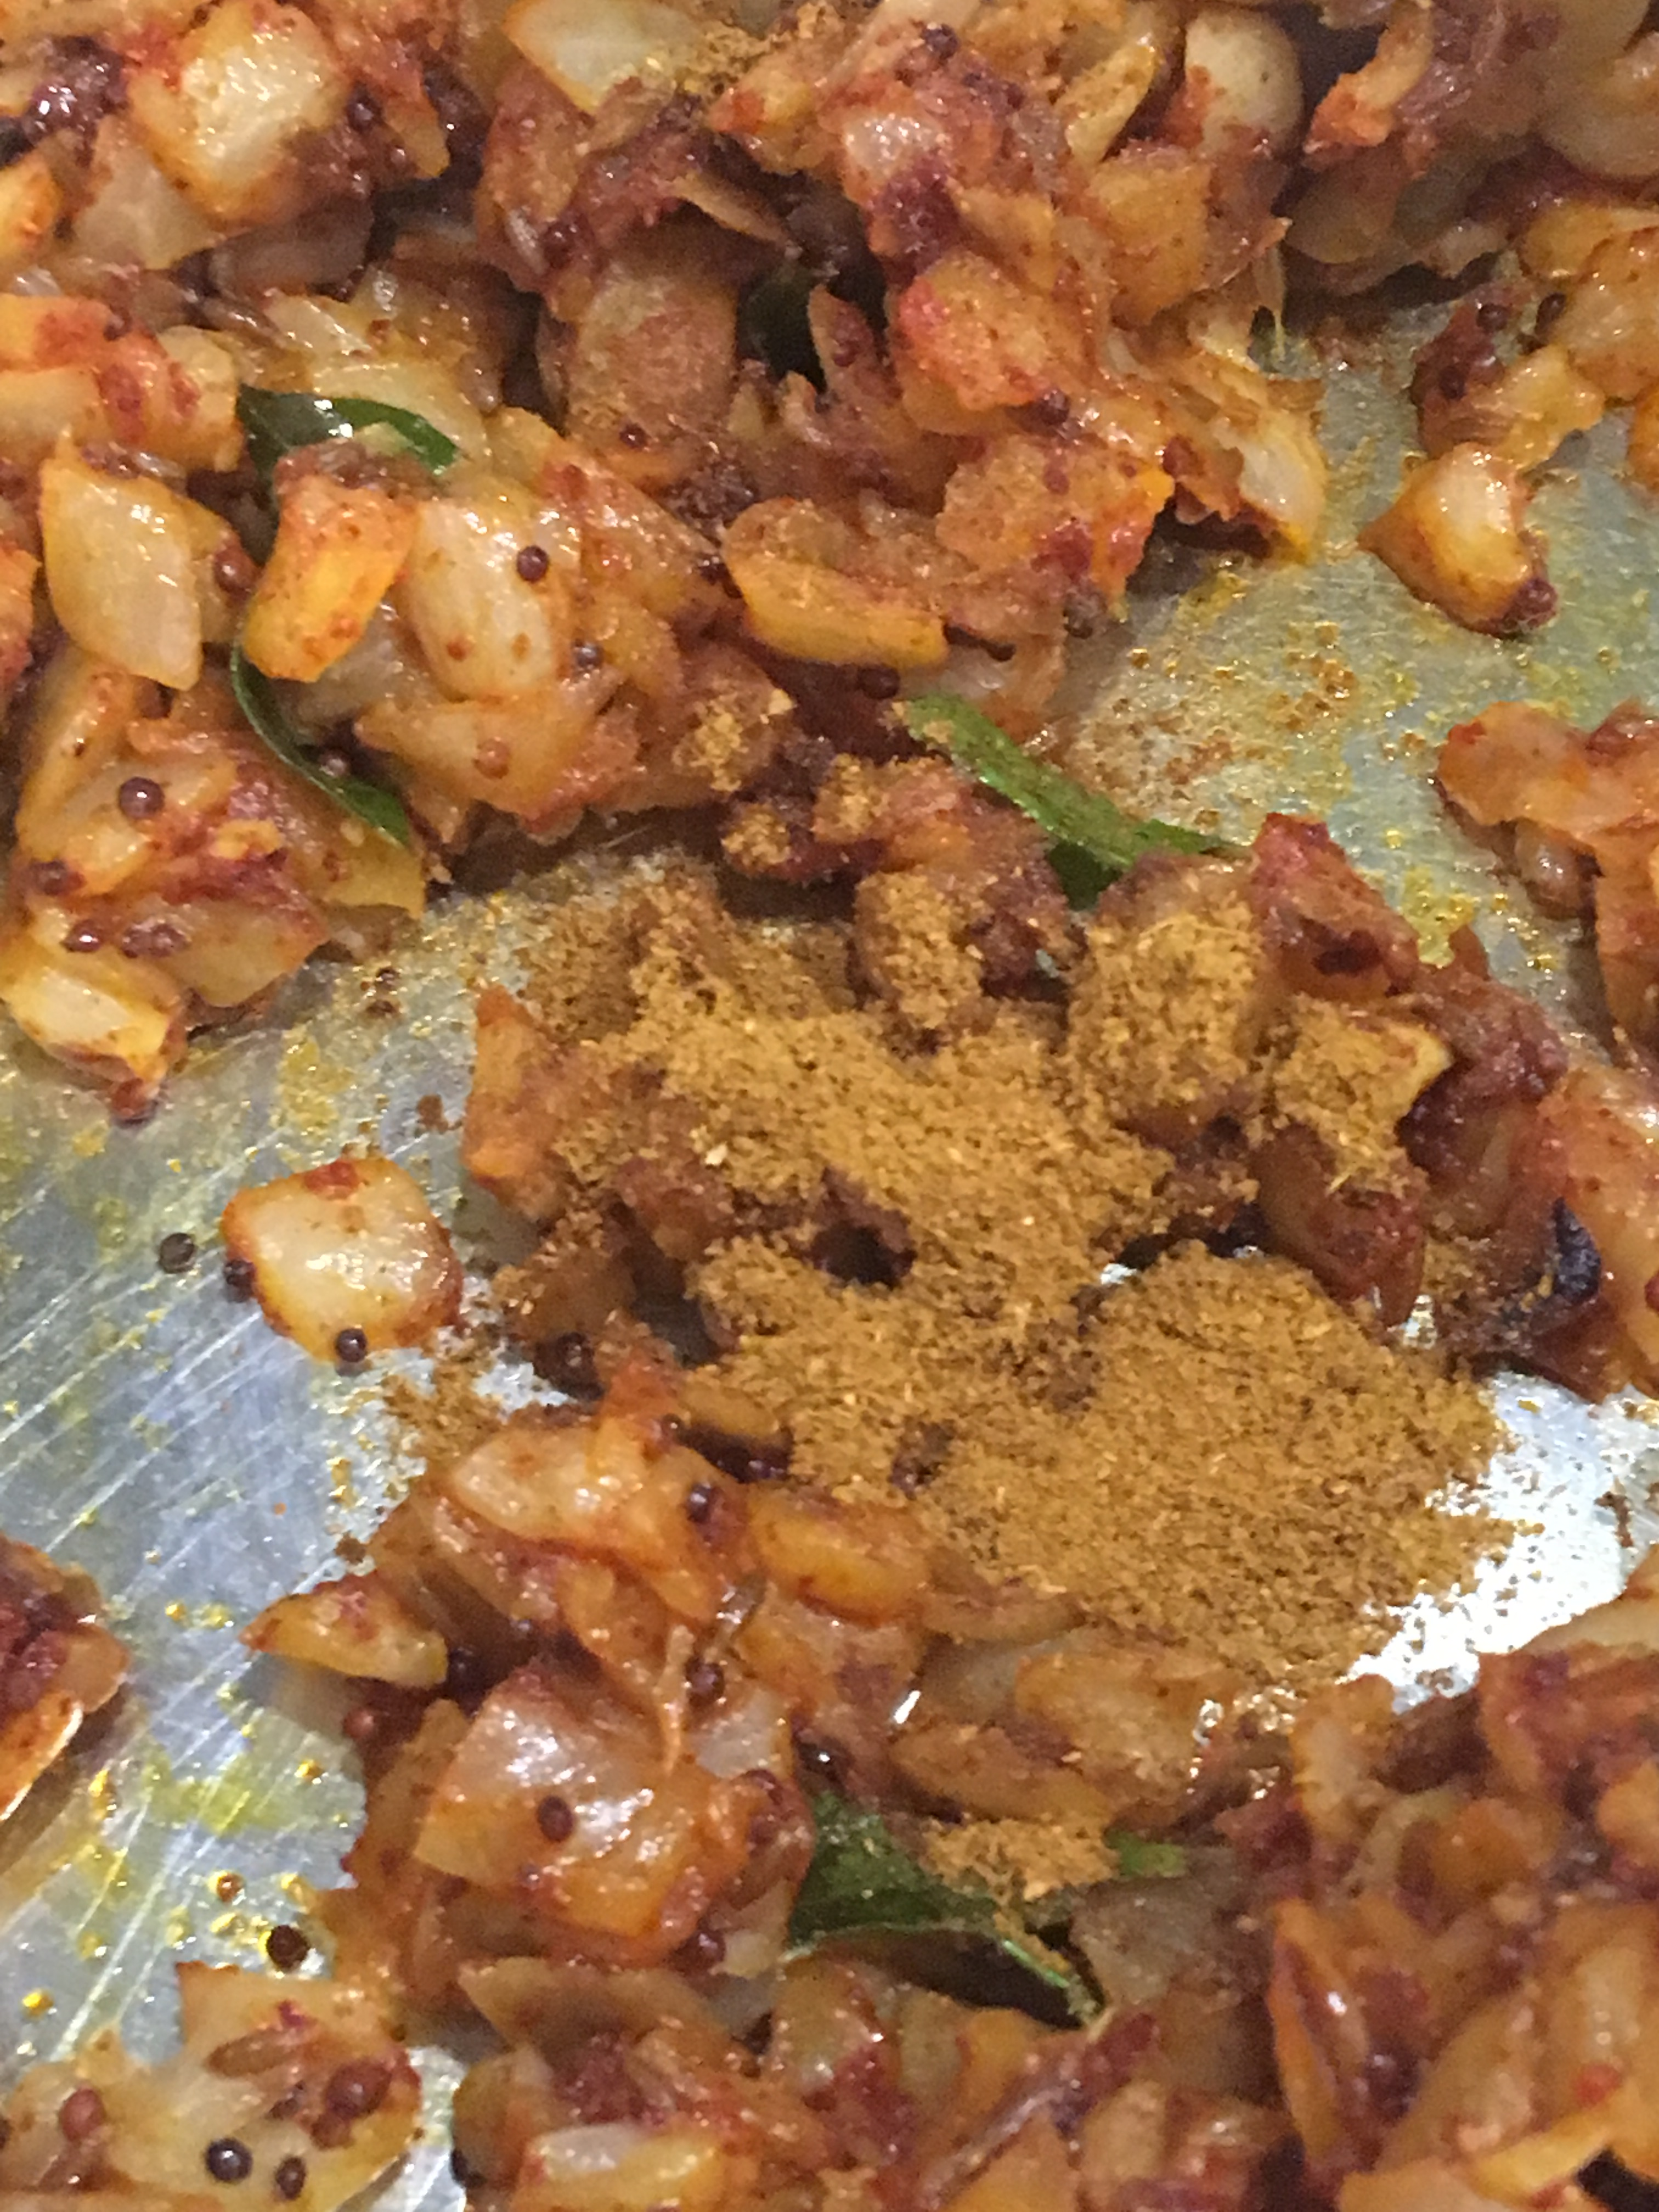 Master recipe curry sauce for leftover meat mary anne mohanraj 3 add ketchup worcestershire sauce and coconut milk stirring each ingredient in you now have a basic curry sauce suitable for meat chicken or fish forumfinder Choice Image